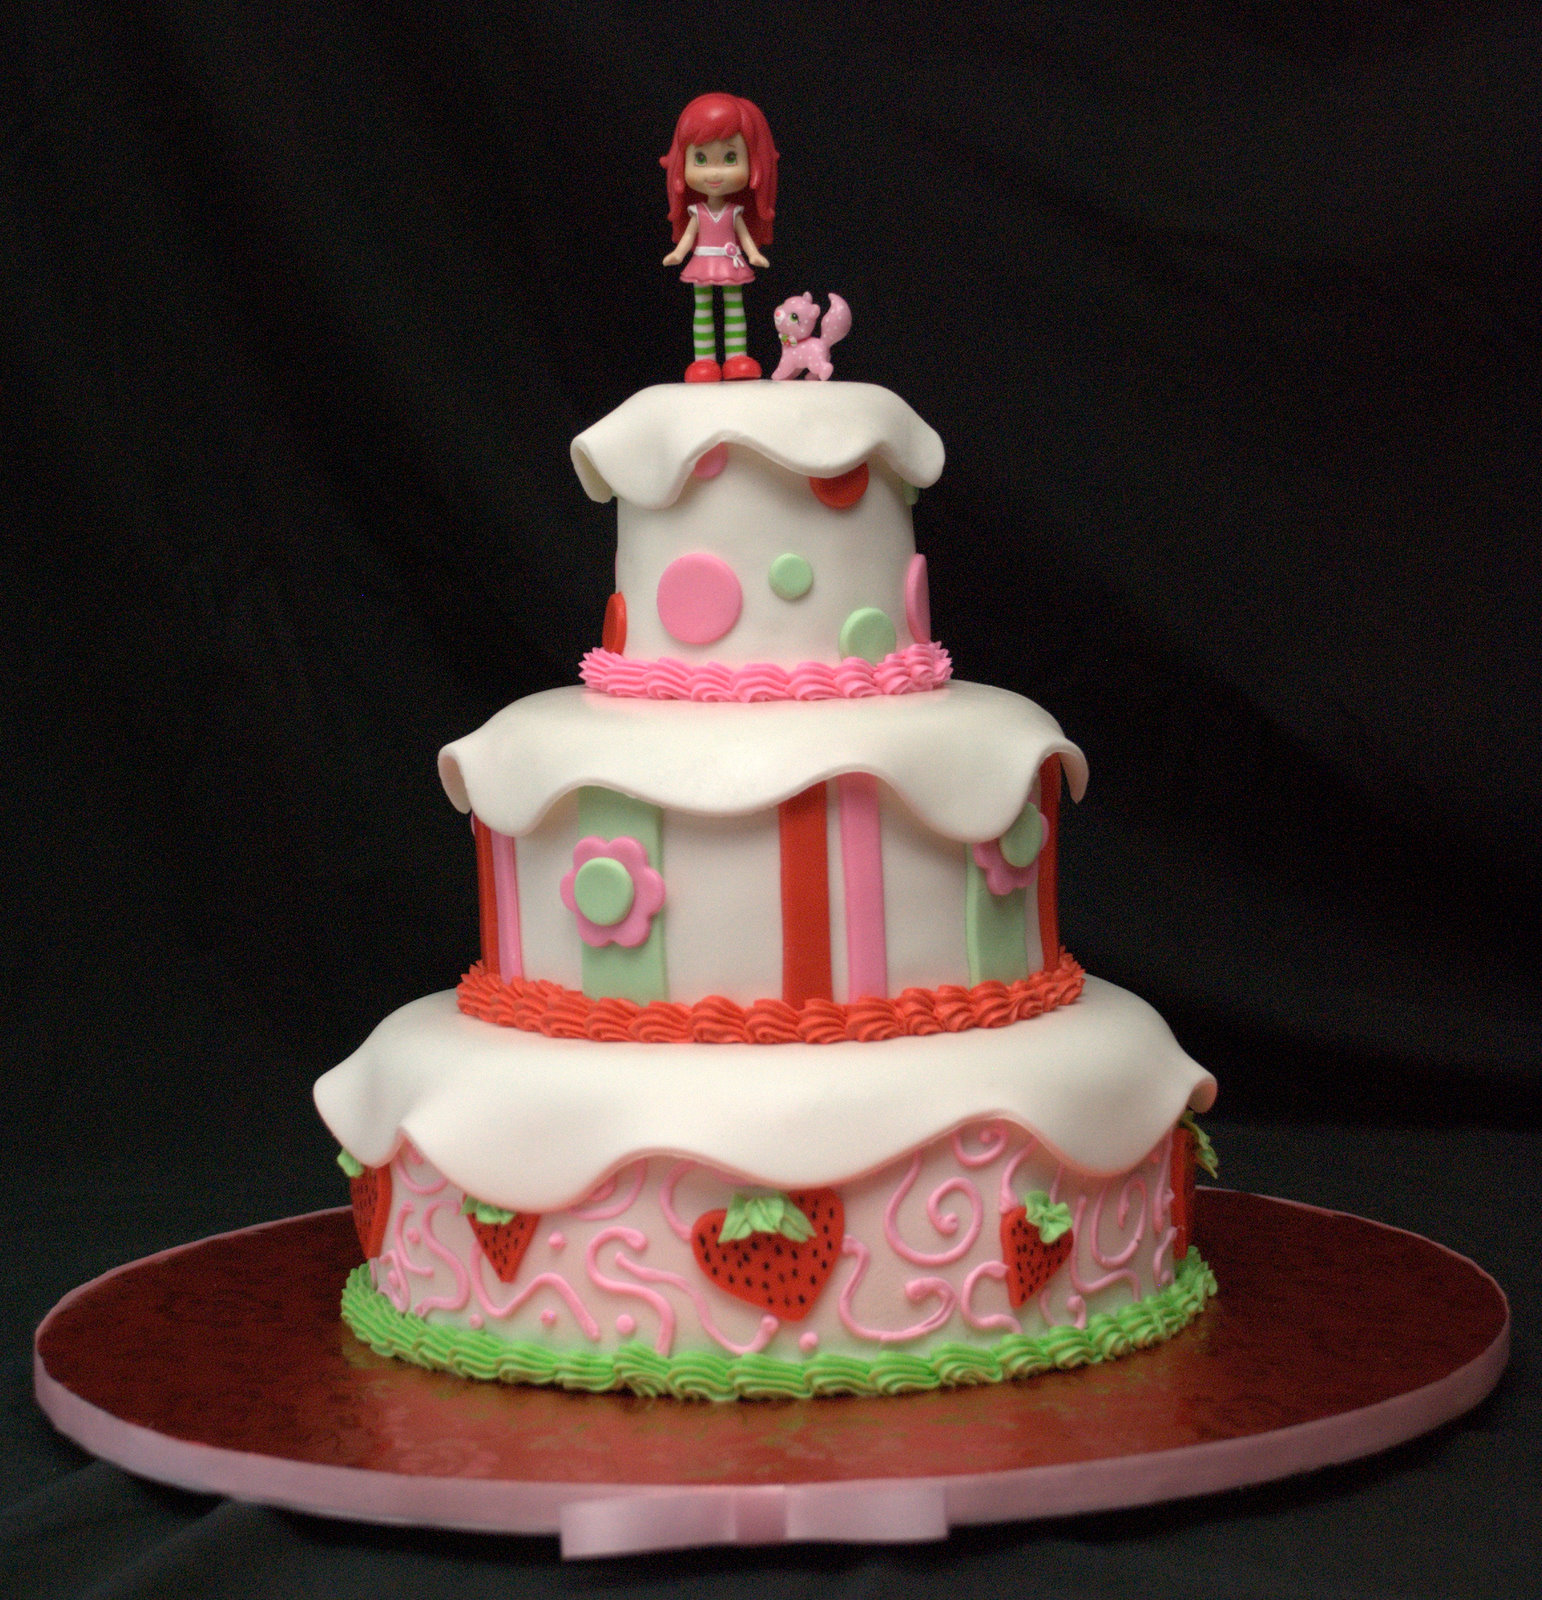 Zoey's Delights: Strawberry Shortcake Cake